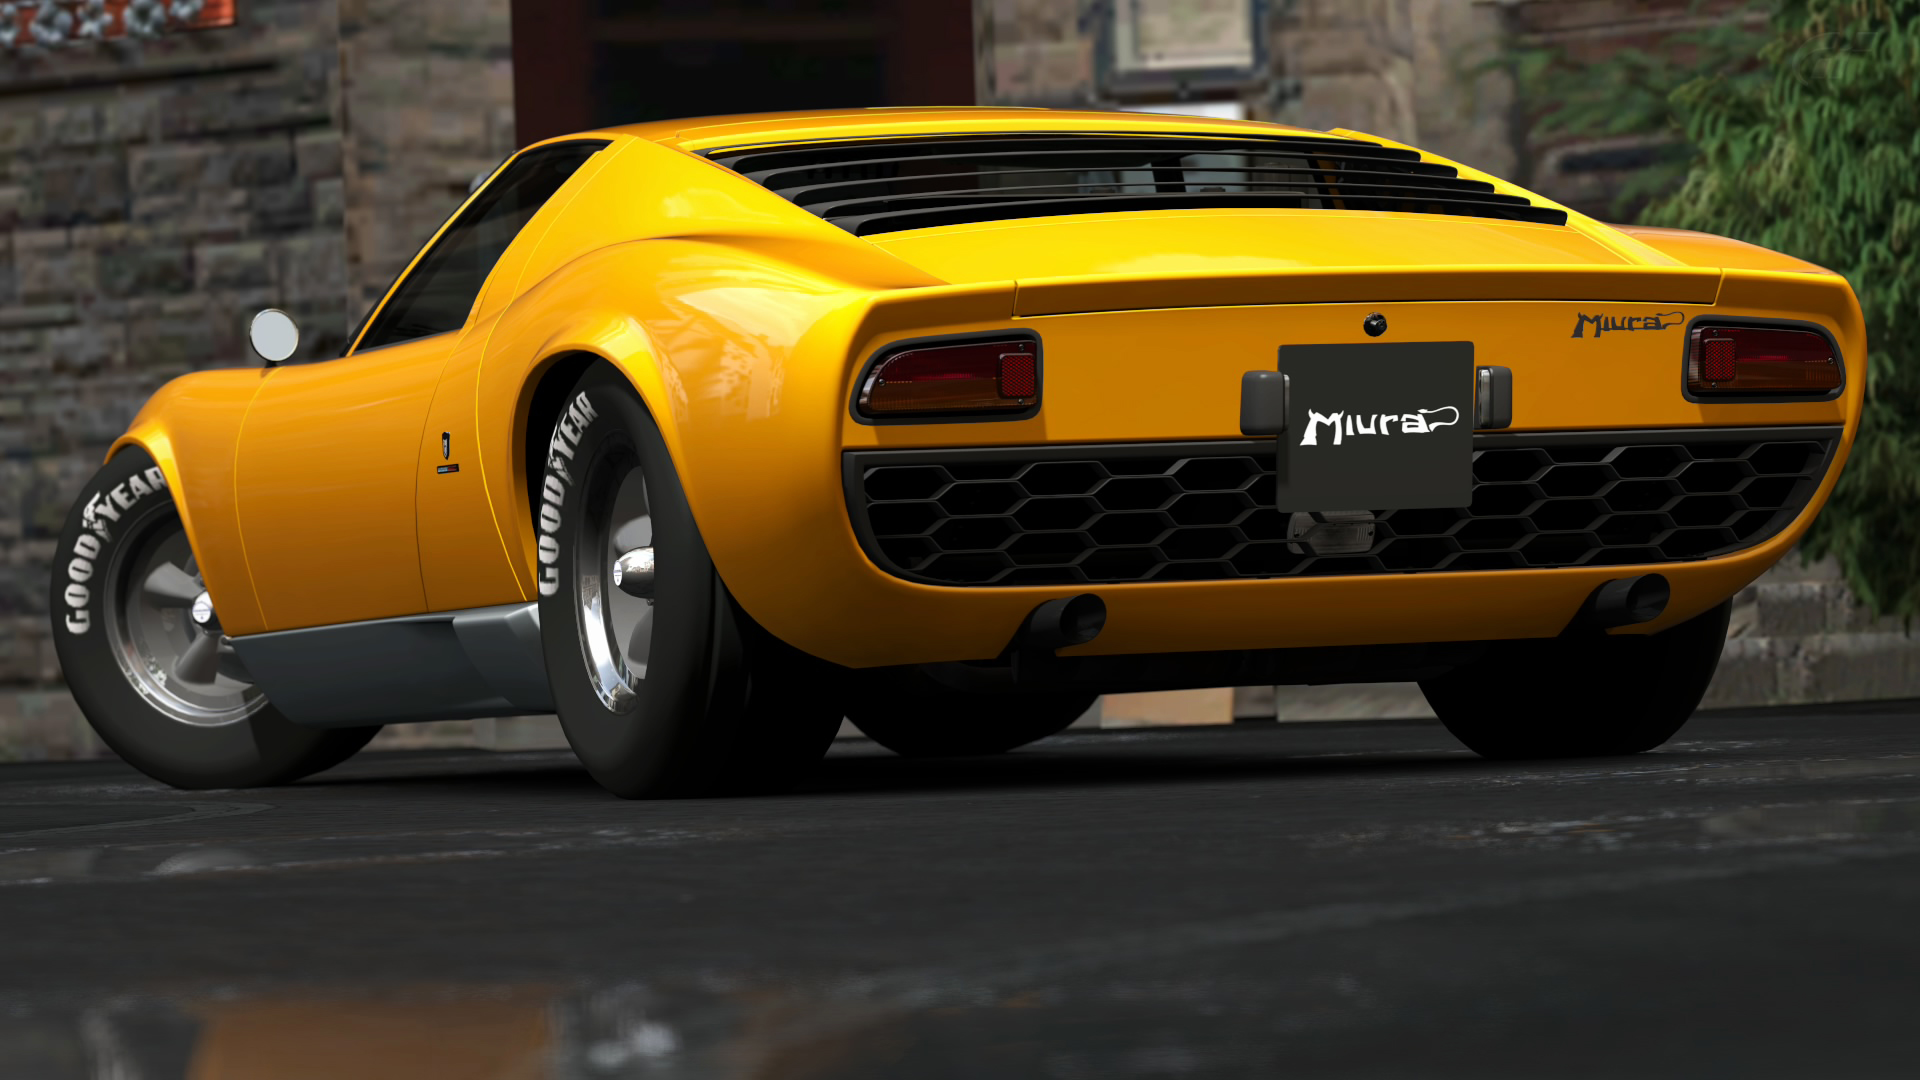 My Perfect Lamborghini Miura 3dtuning Probably The Best Car